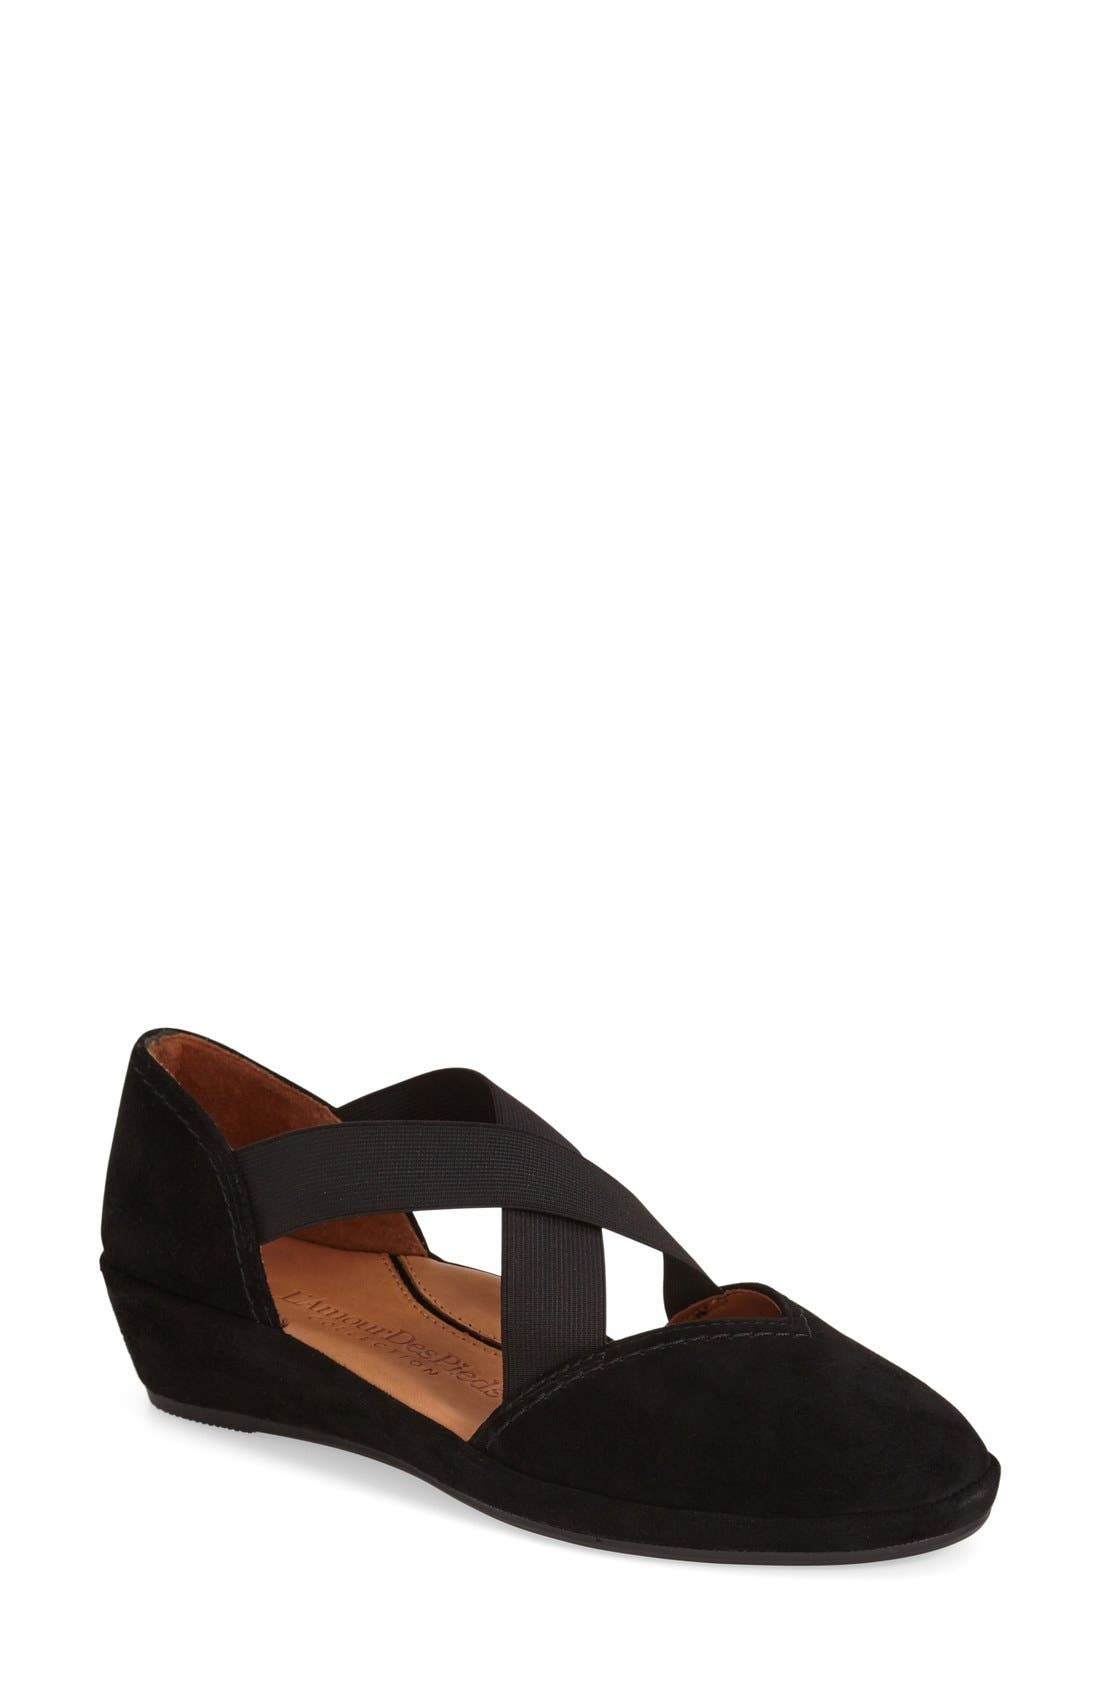 L'AMOUR DES PIEDS, 'Bane' Wedge, Main thumbnail 1, color, BLACK KIDSUEDE